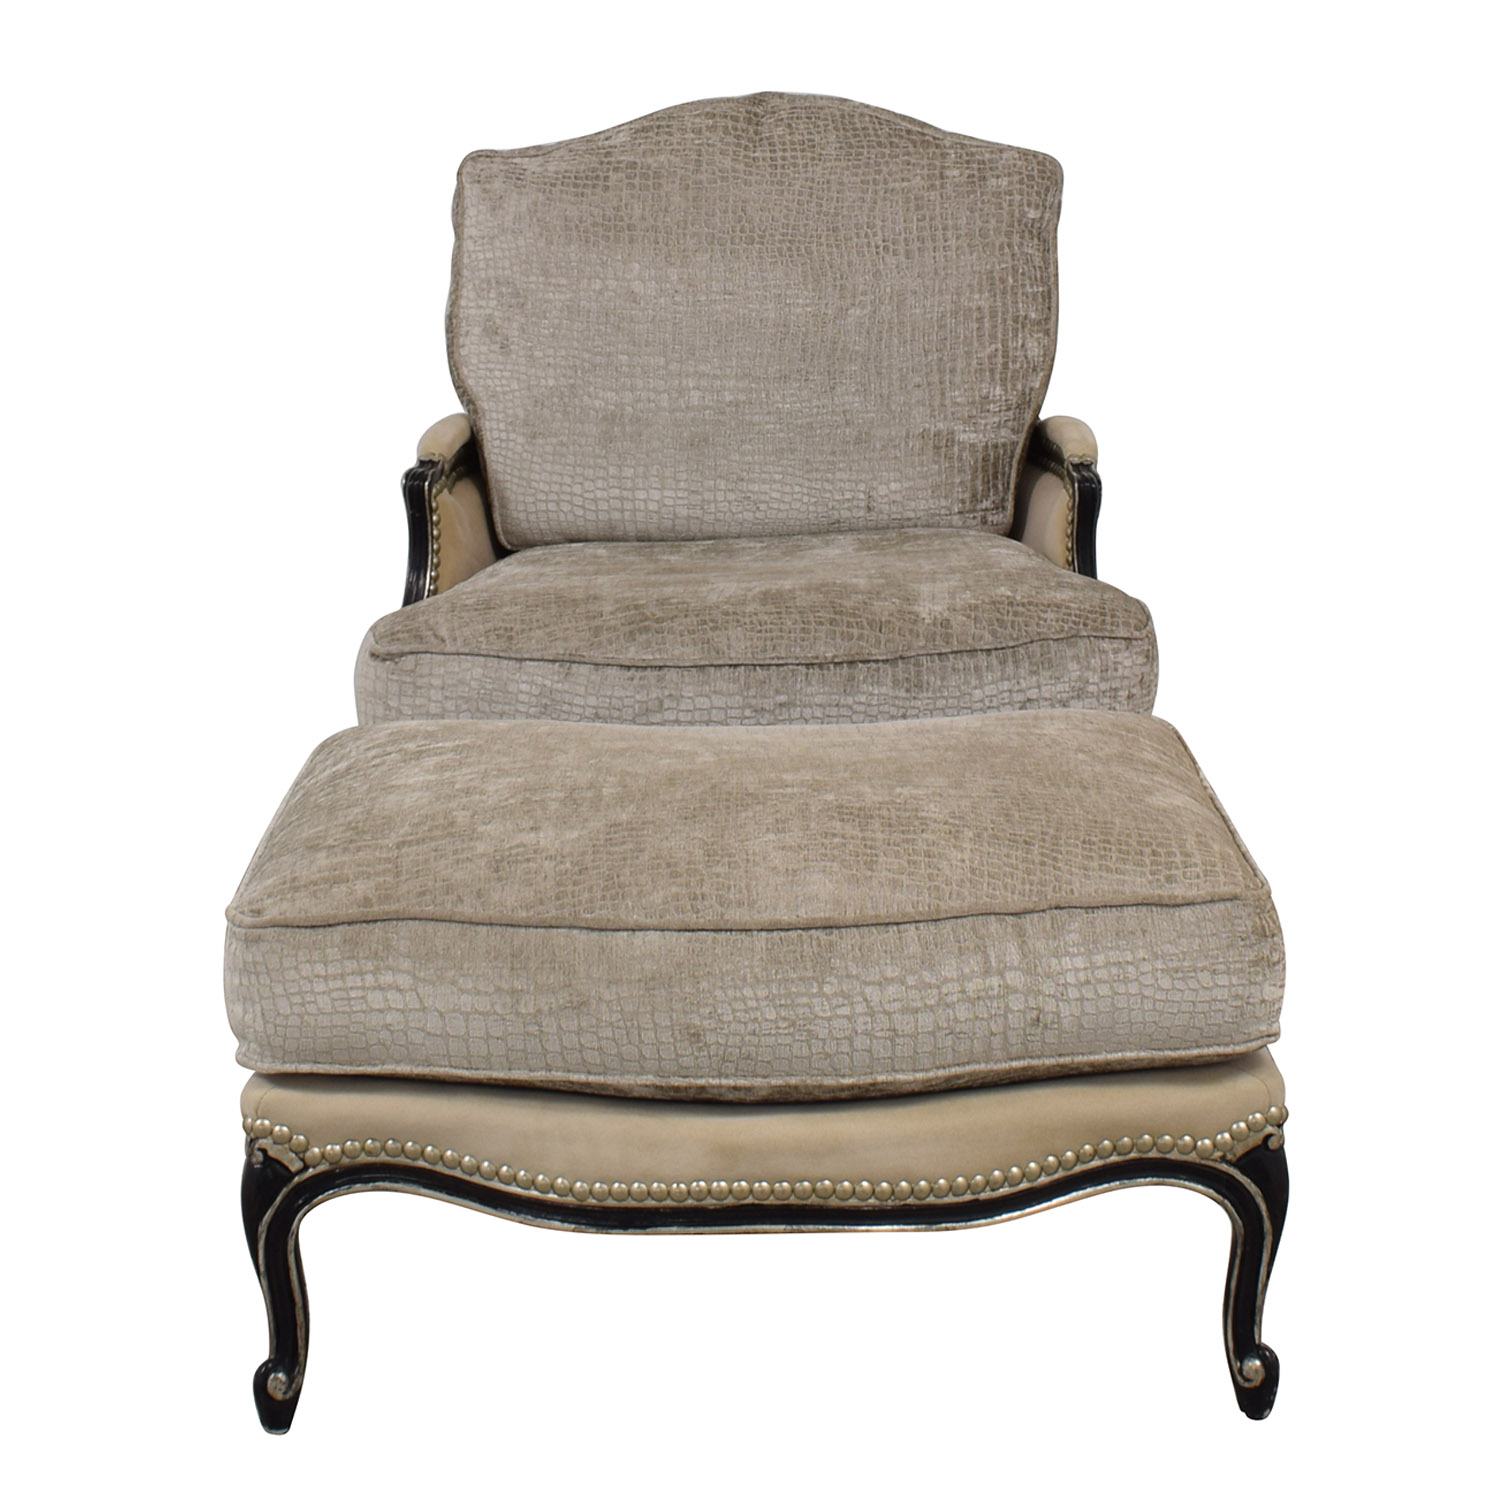 Century Furniture Century Furniture Custom Bergere Beige Nailhead Dovetailed Accent Chair nj